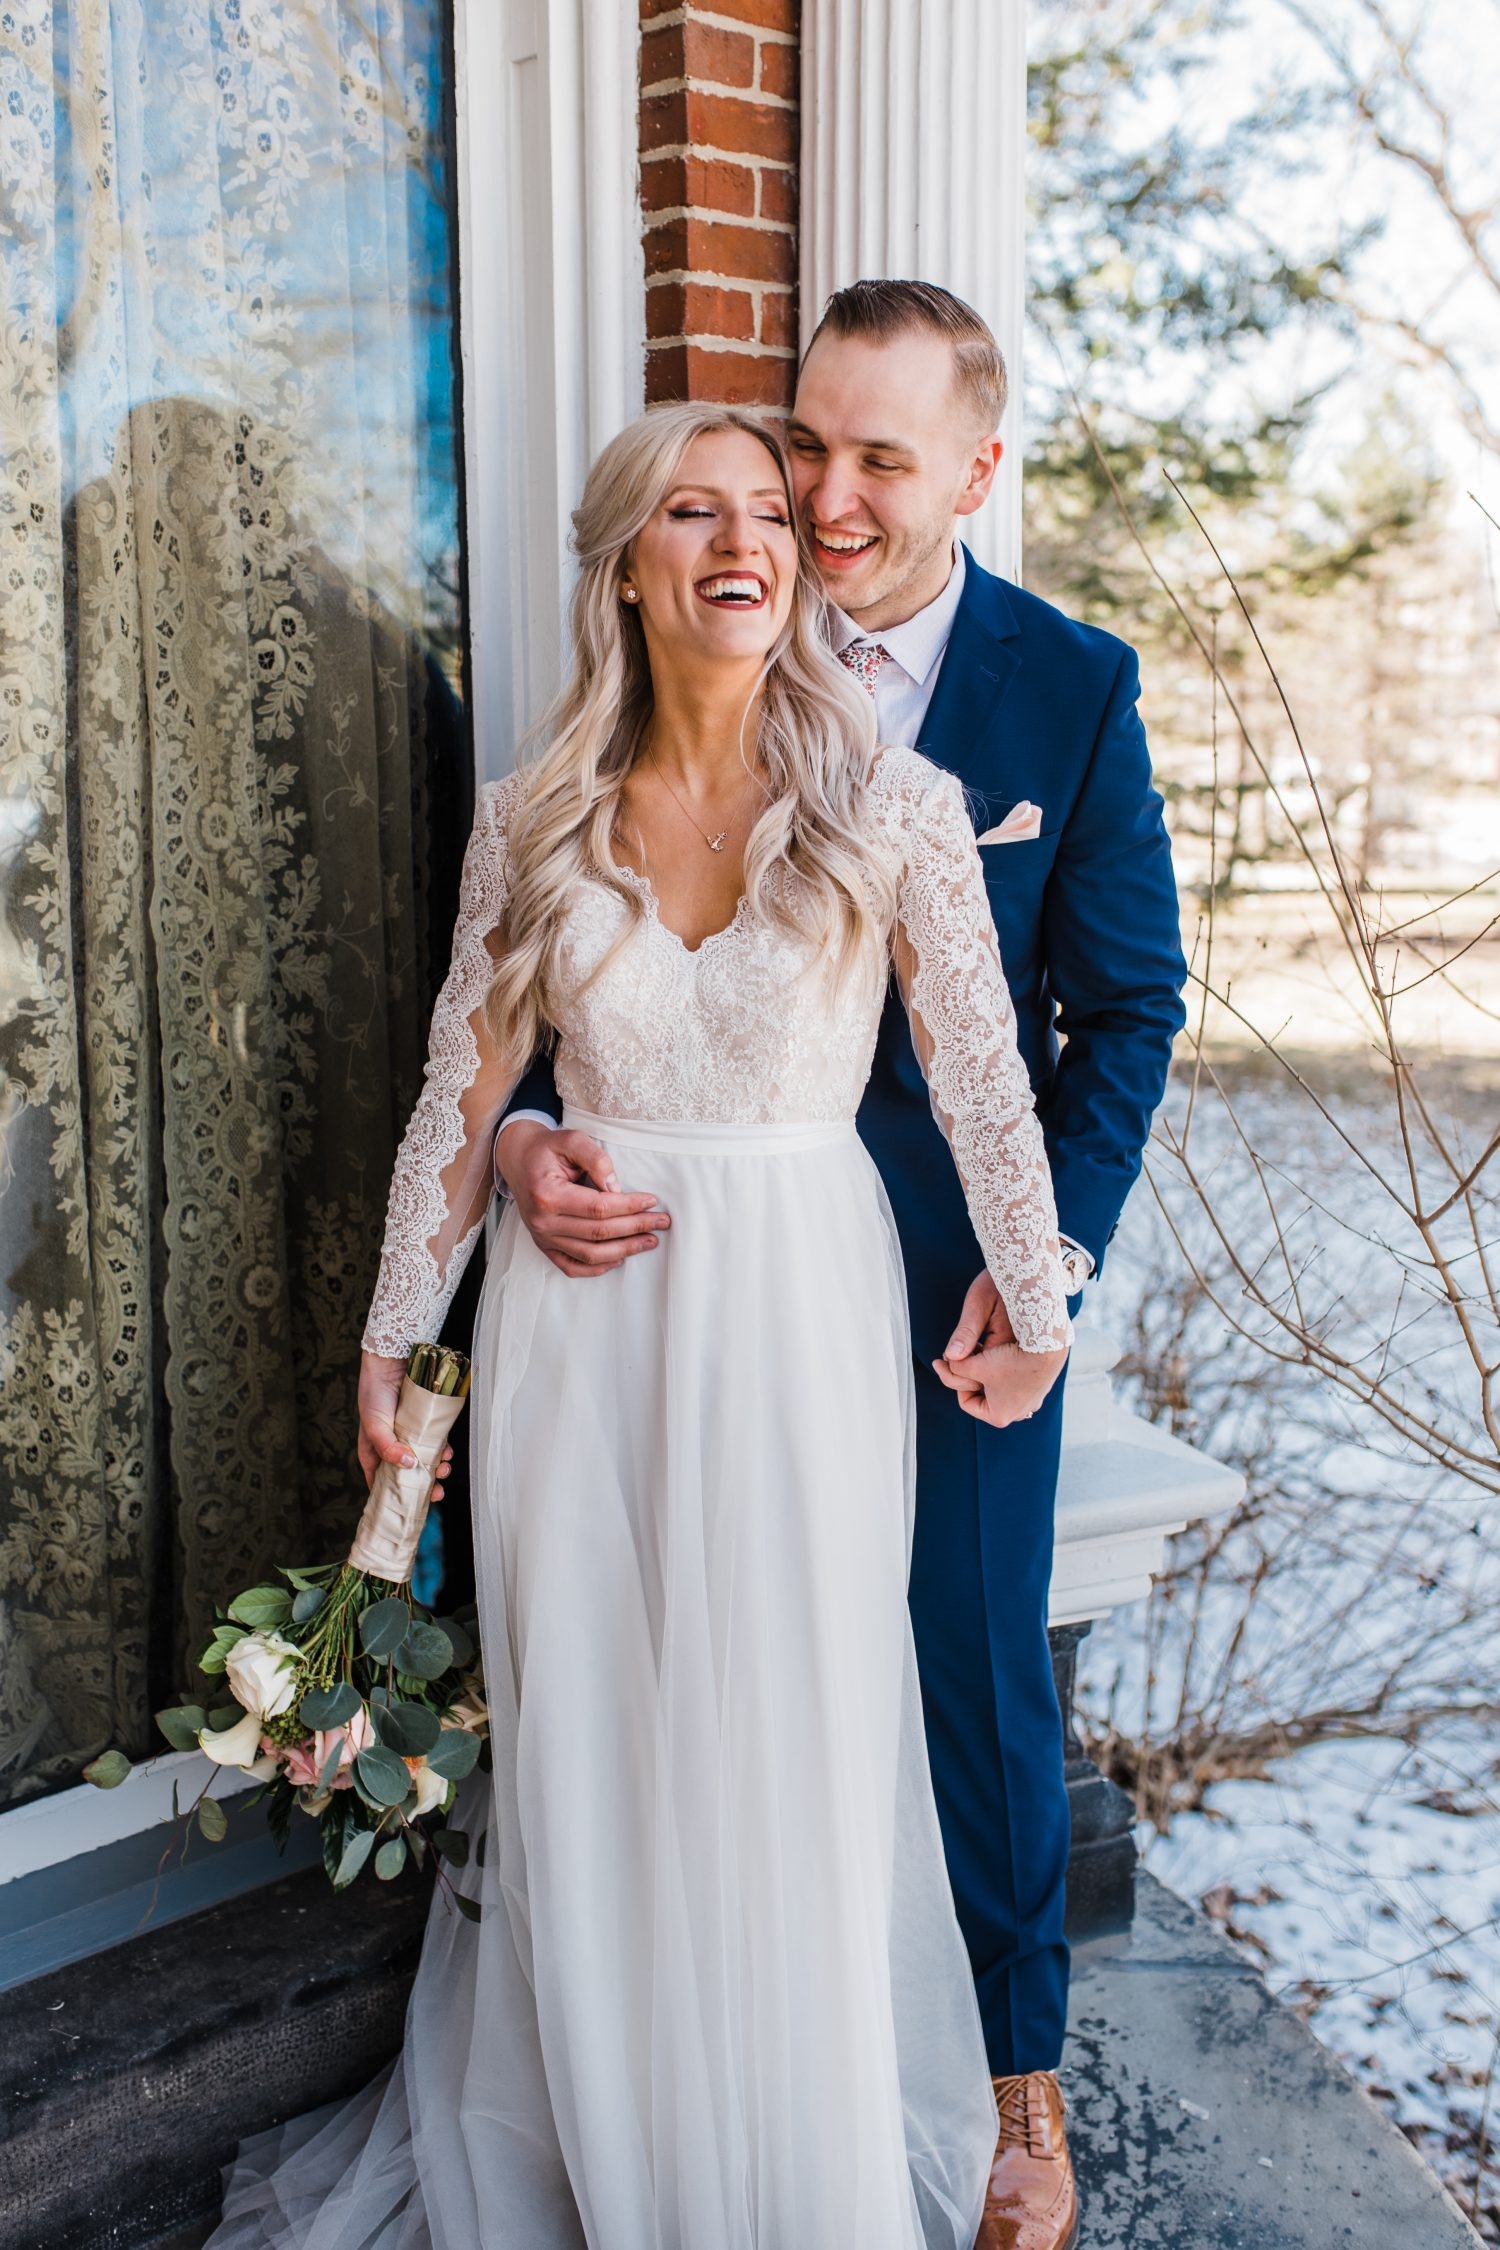 Modern + Trendy Spring Wedding | Easterday Creative | Adventurous wedding photographer and storyteller